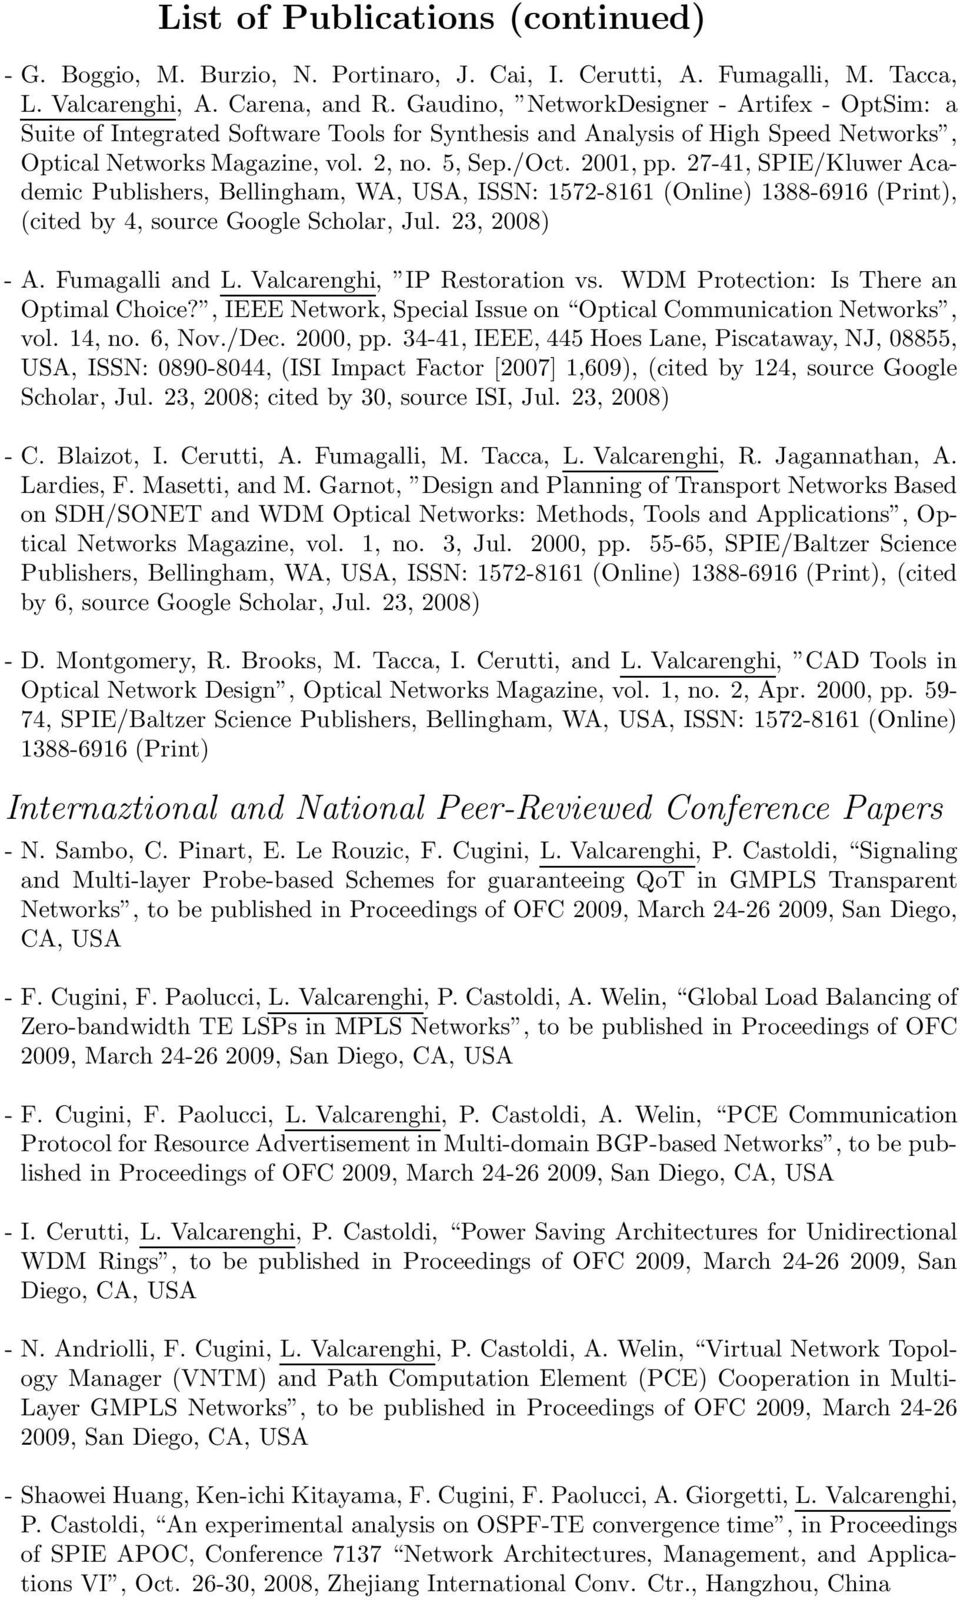 27-41, SPIE/Kluwer Academic Publishers, Bellingham, WA, USA, ISSN: 1572-8161 (Online) 1388-6916 (Print), (cited by 4, source Google Scholar, Jul. 23, 2008) - A. Fumagalli and L.